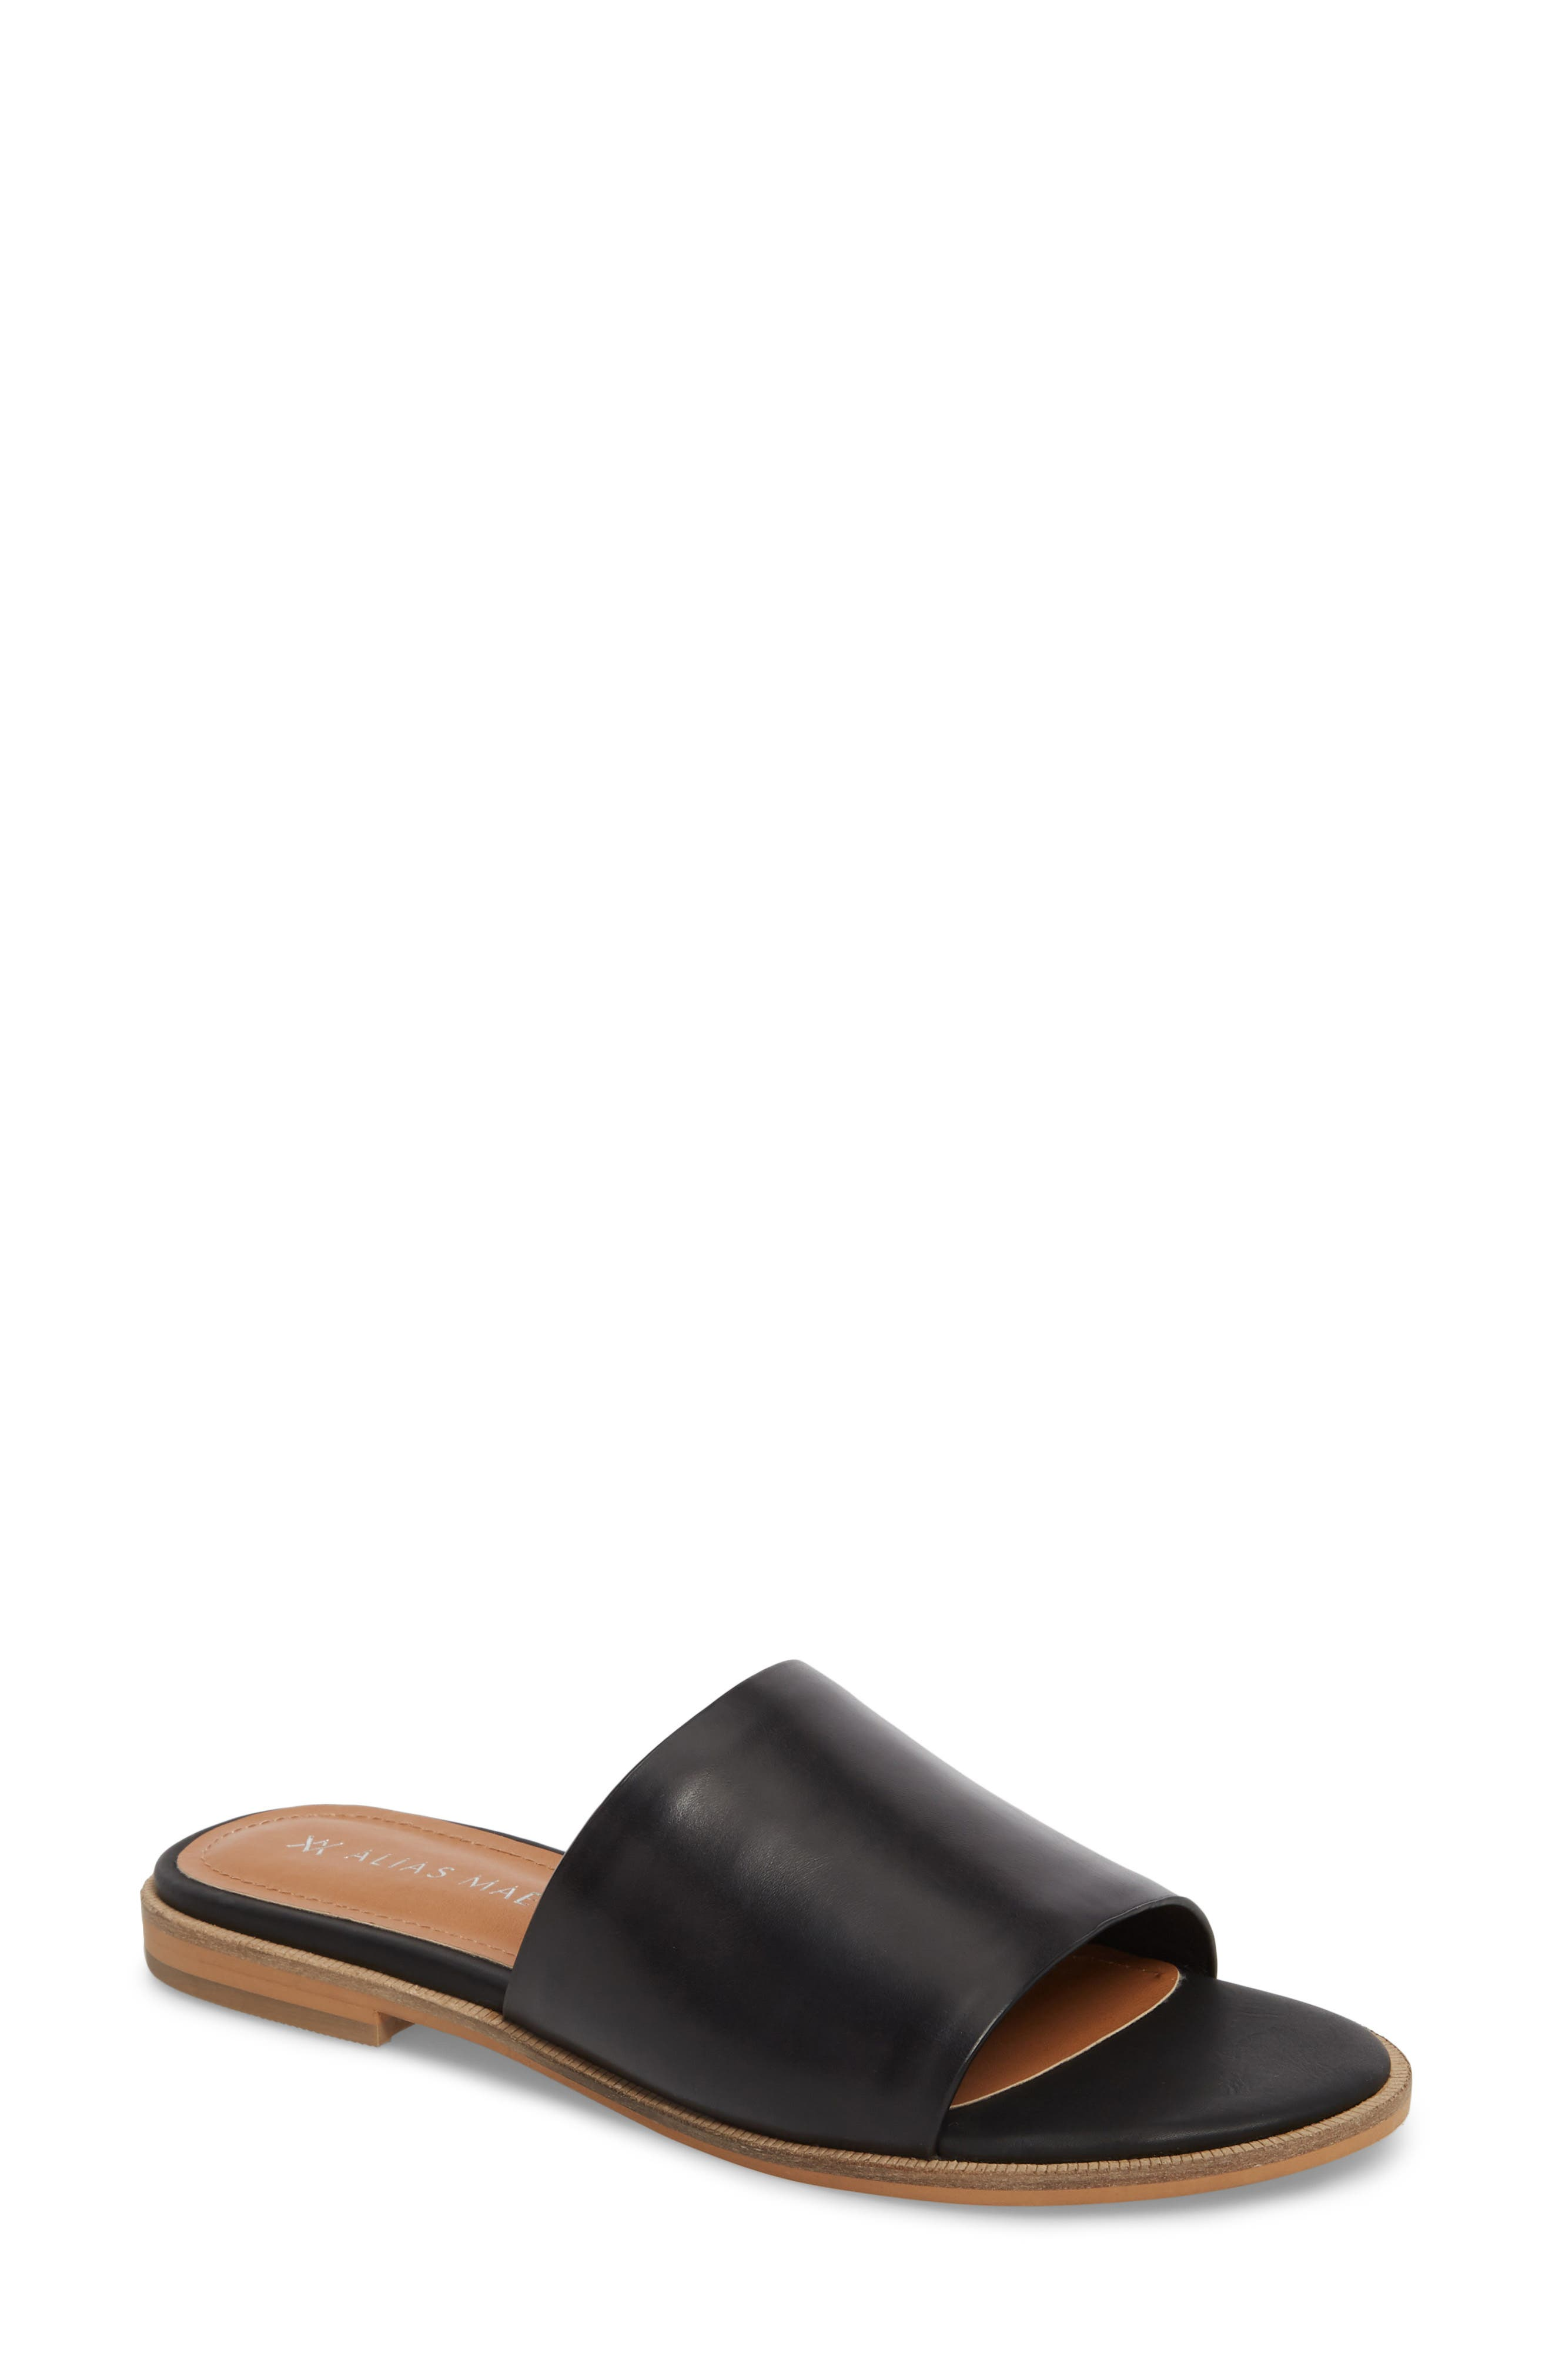 Therapy Slide Sandal,                         Main,                         color, BLACK LEATHER